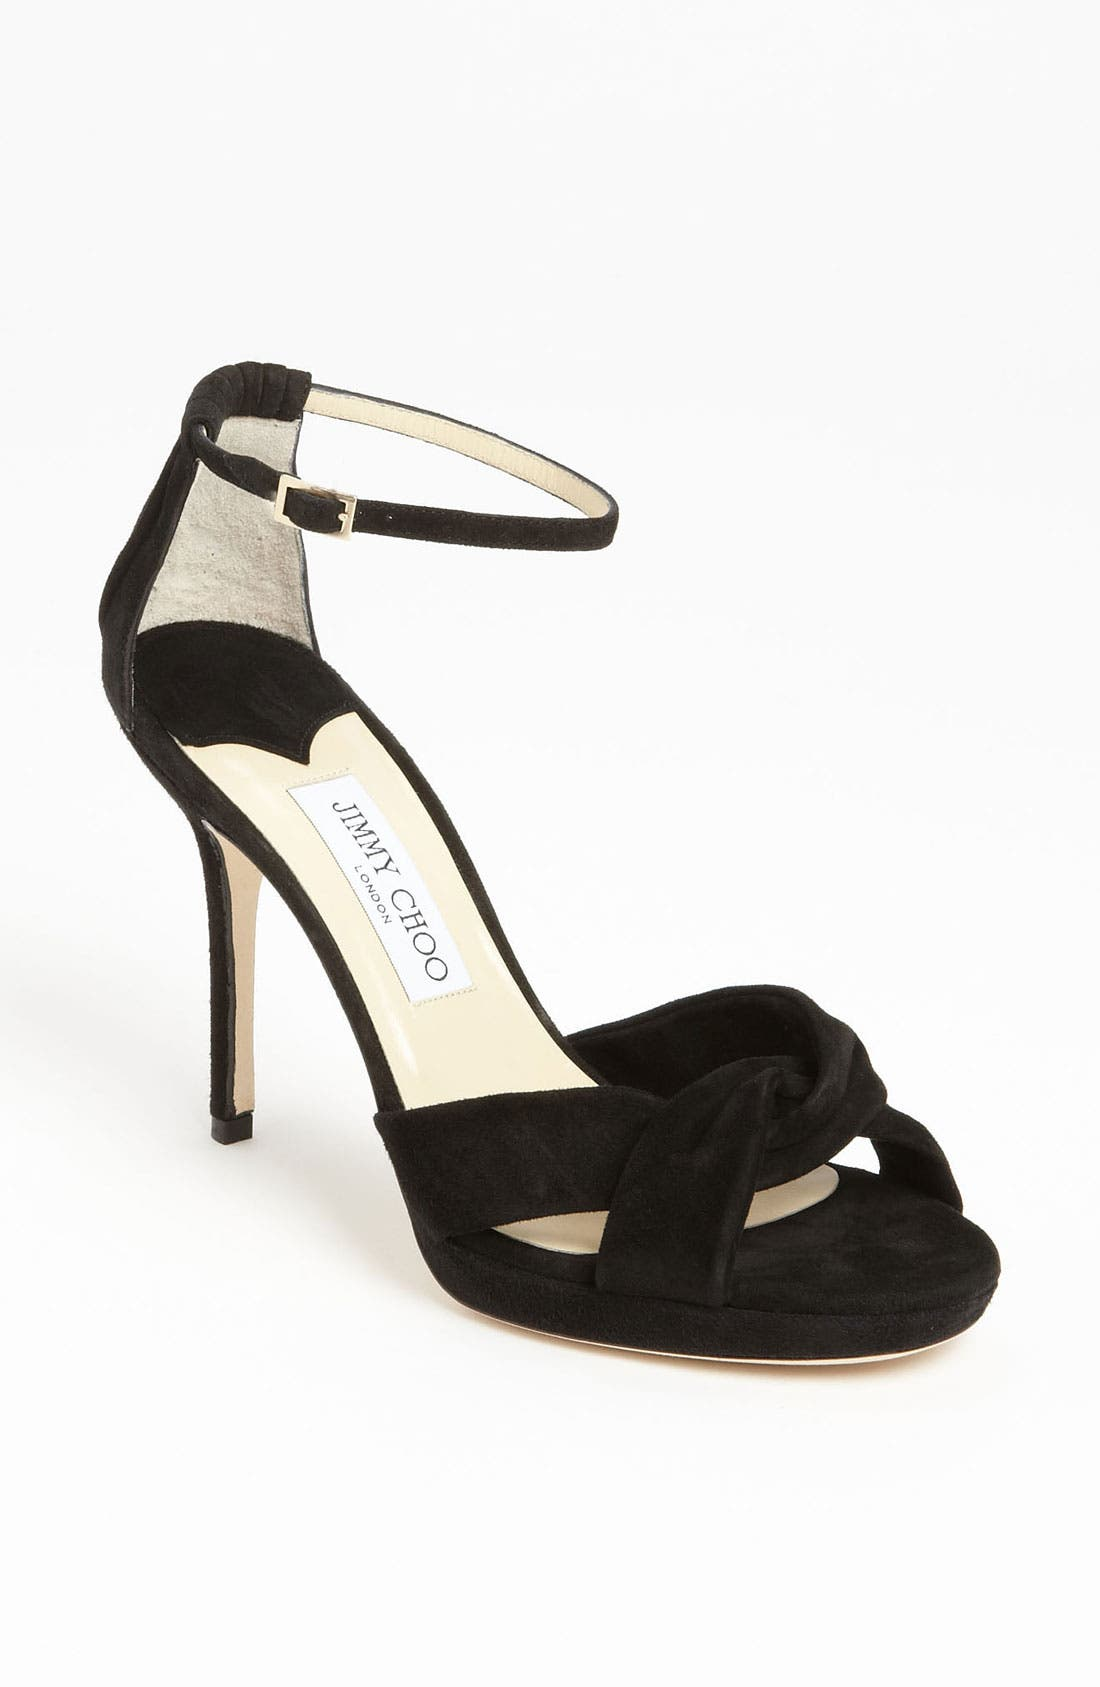 Alternate Image 1 Selected - Jimmy Choo 'Marion' Sandal